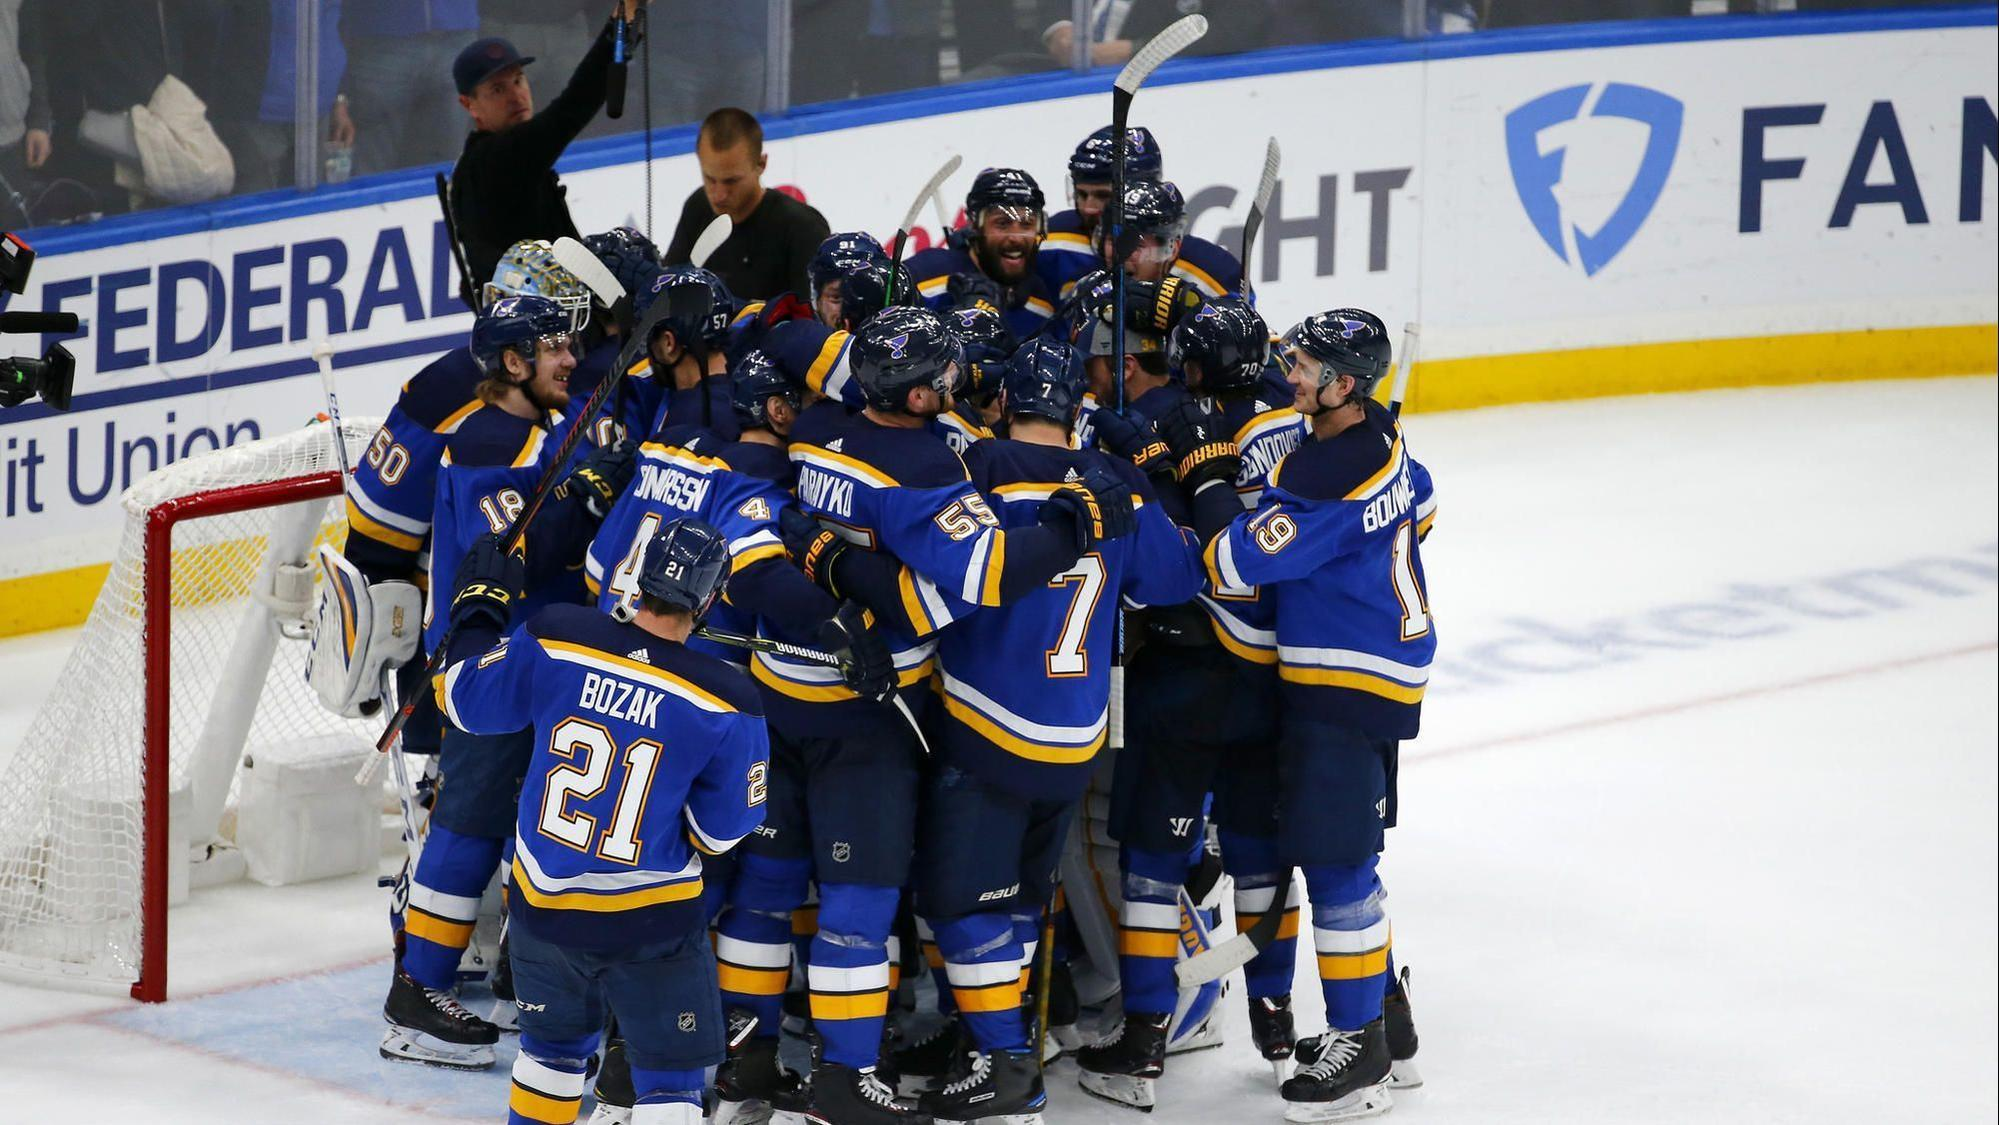 Blues beat Sharks 5-1 to reach Stanley Cup Final